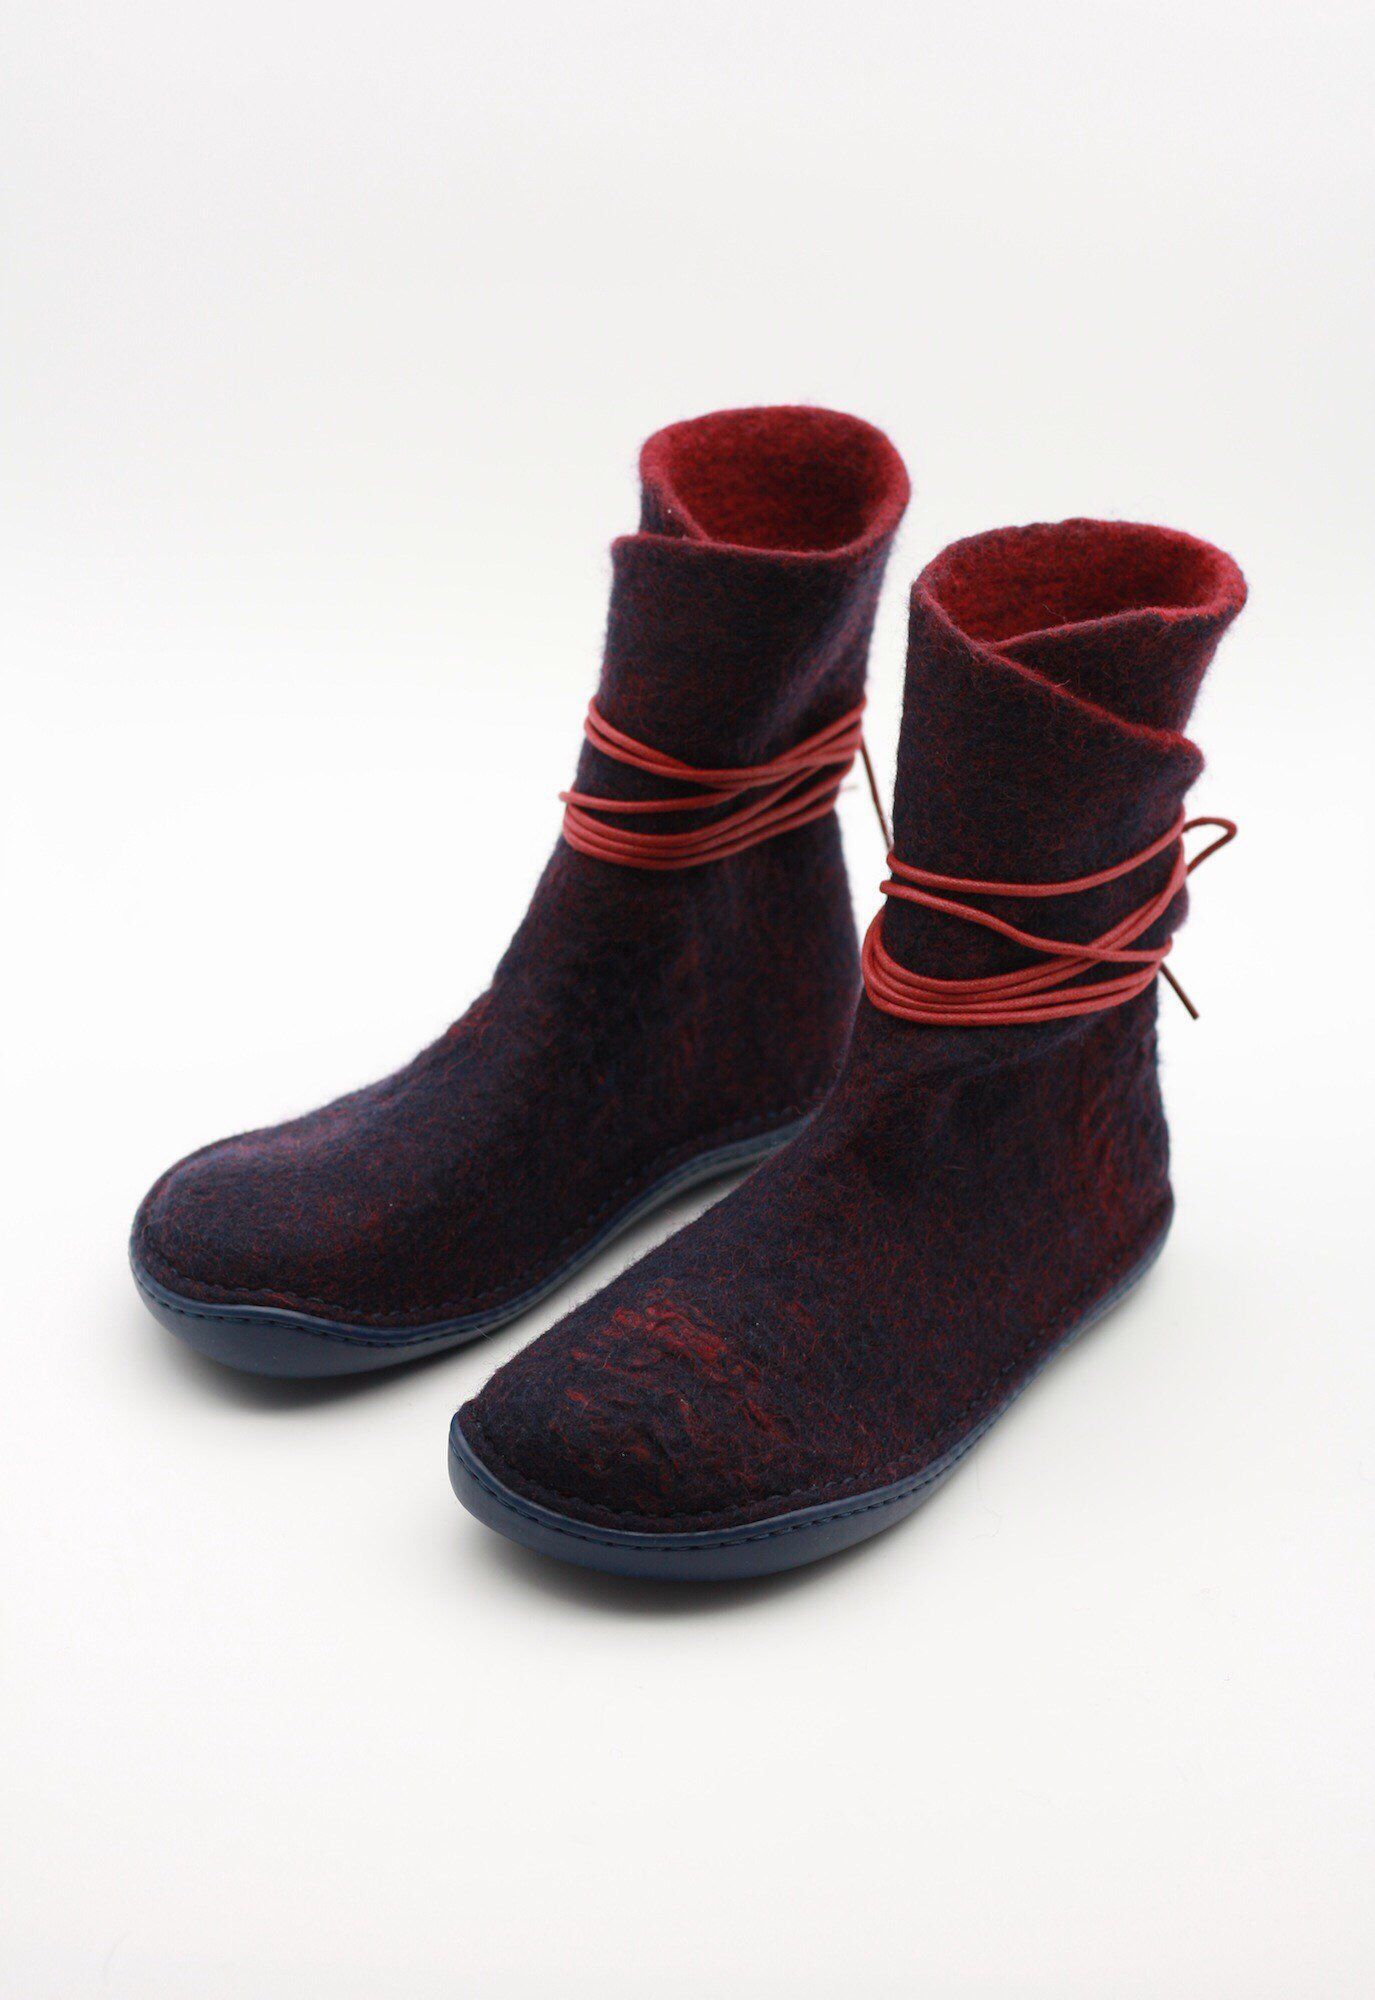 2d649b3575799 LUCIELALUNE Handmade felted wool women strapped boots eco fashion ...